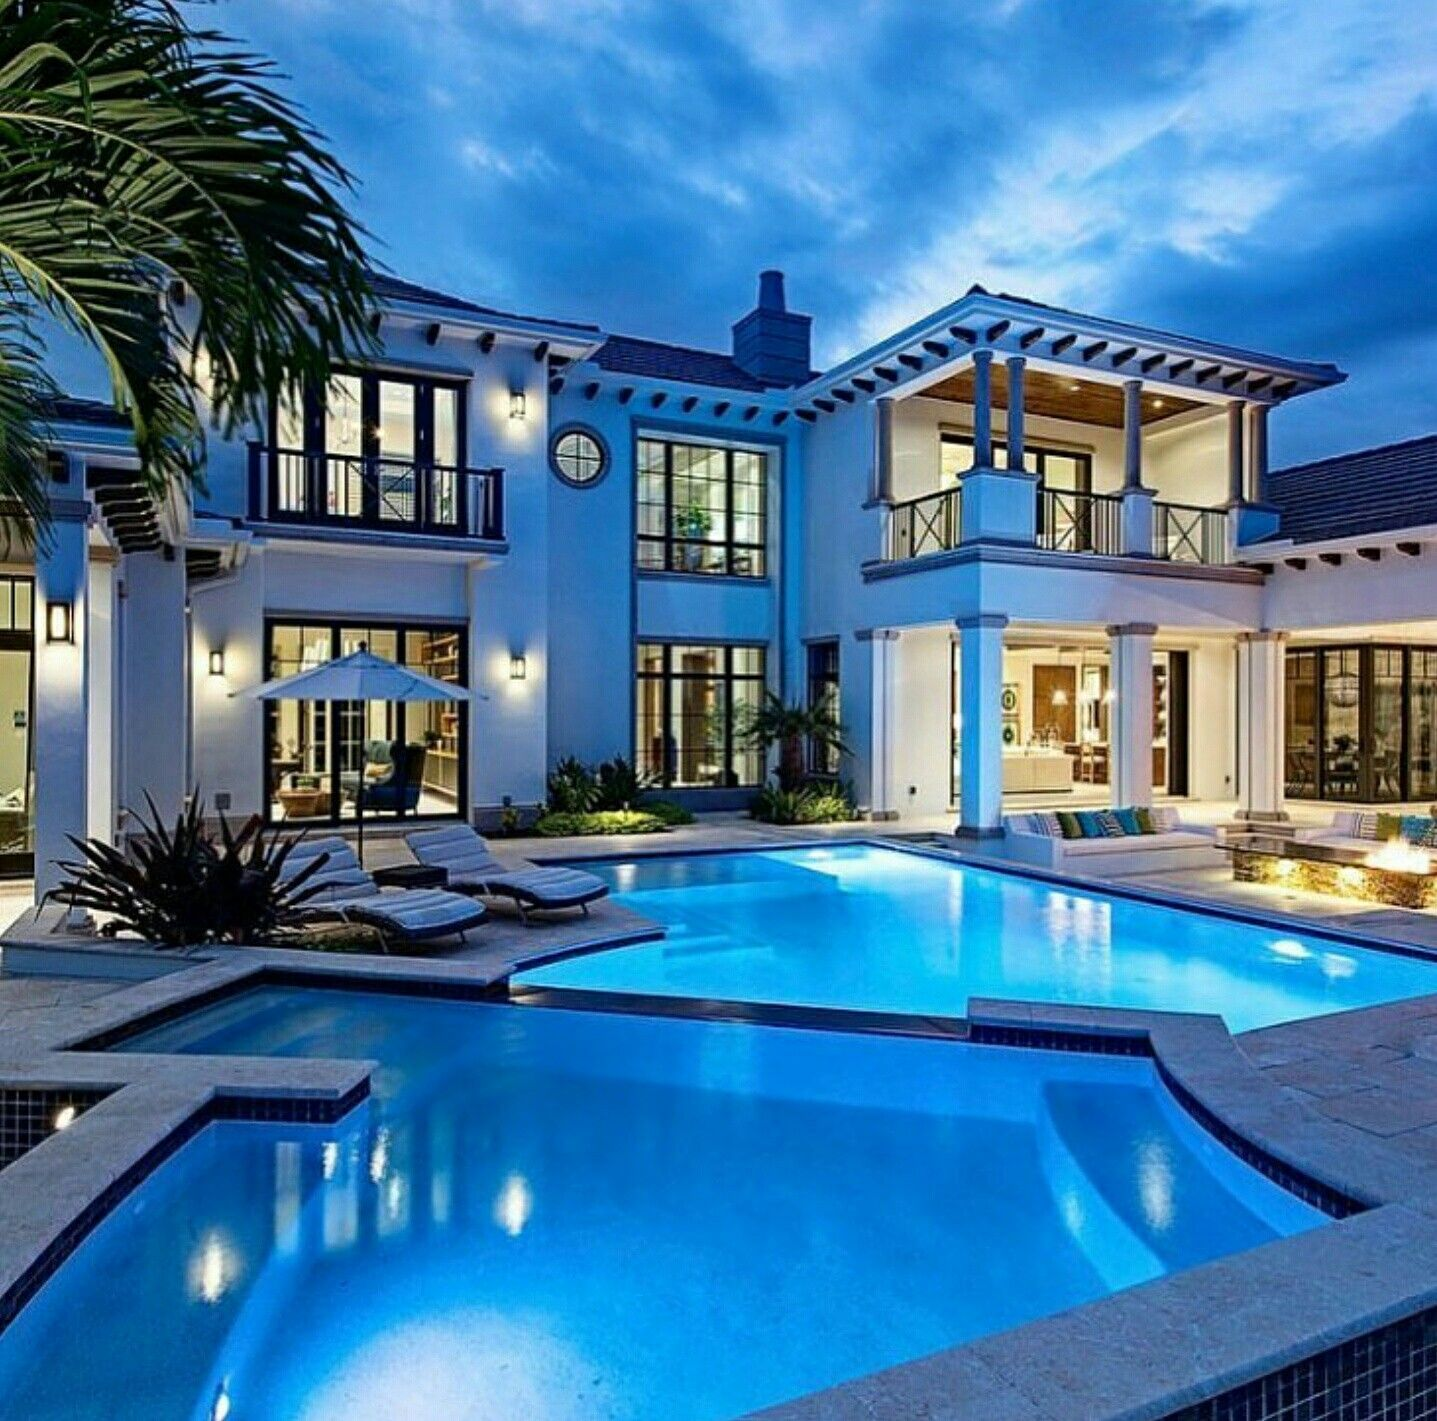 Luxury Big House Design In 2020 Luxury Homes Dream Houses Mansions Mansions Luxury